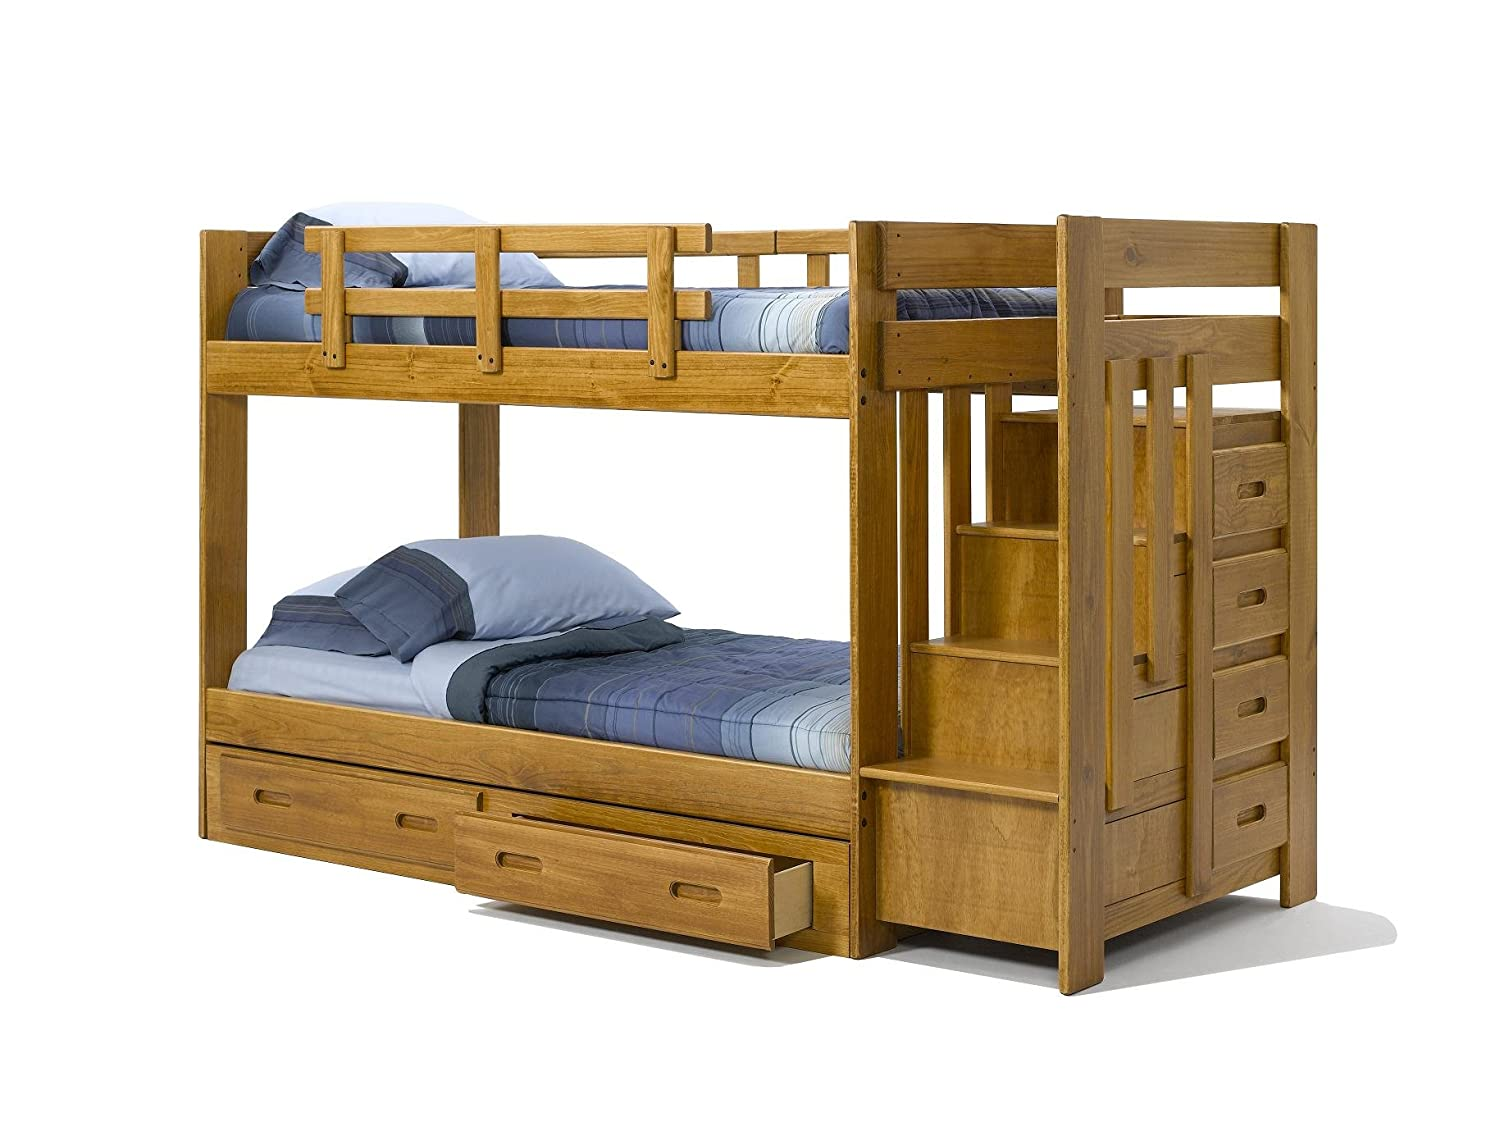 Are some of the things to consider or look for when buying a bunk bed